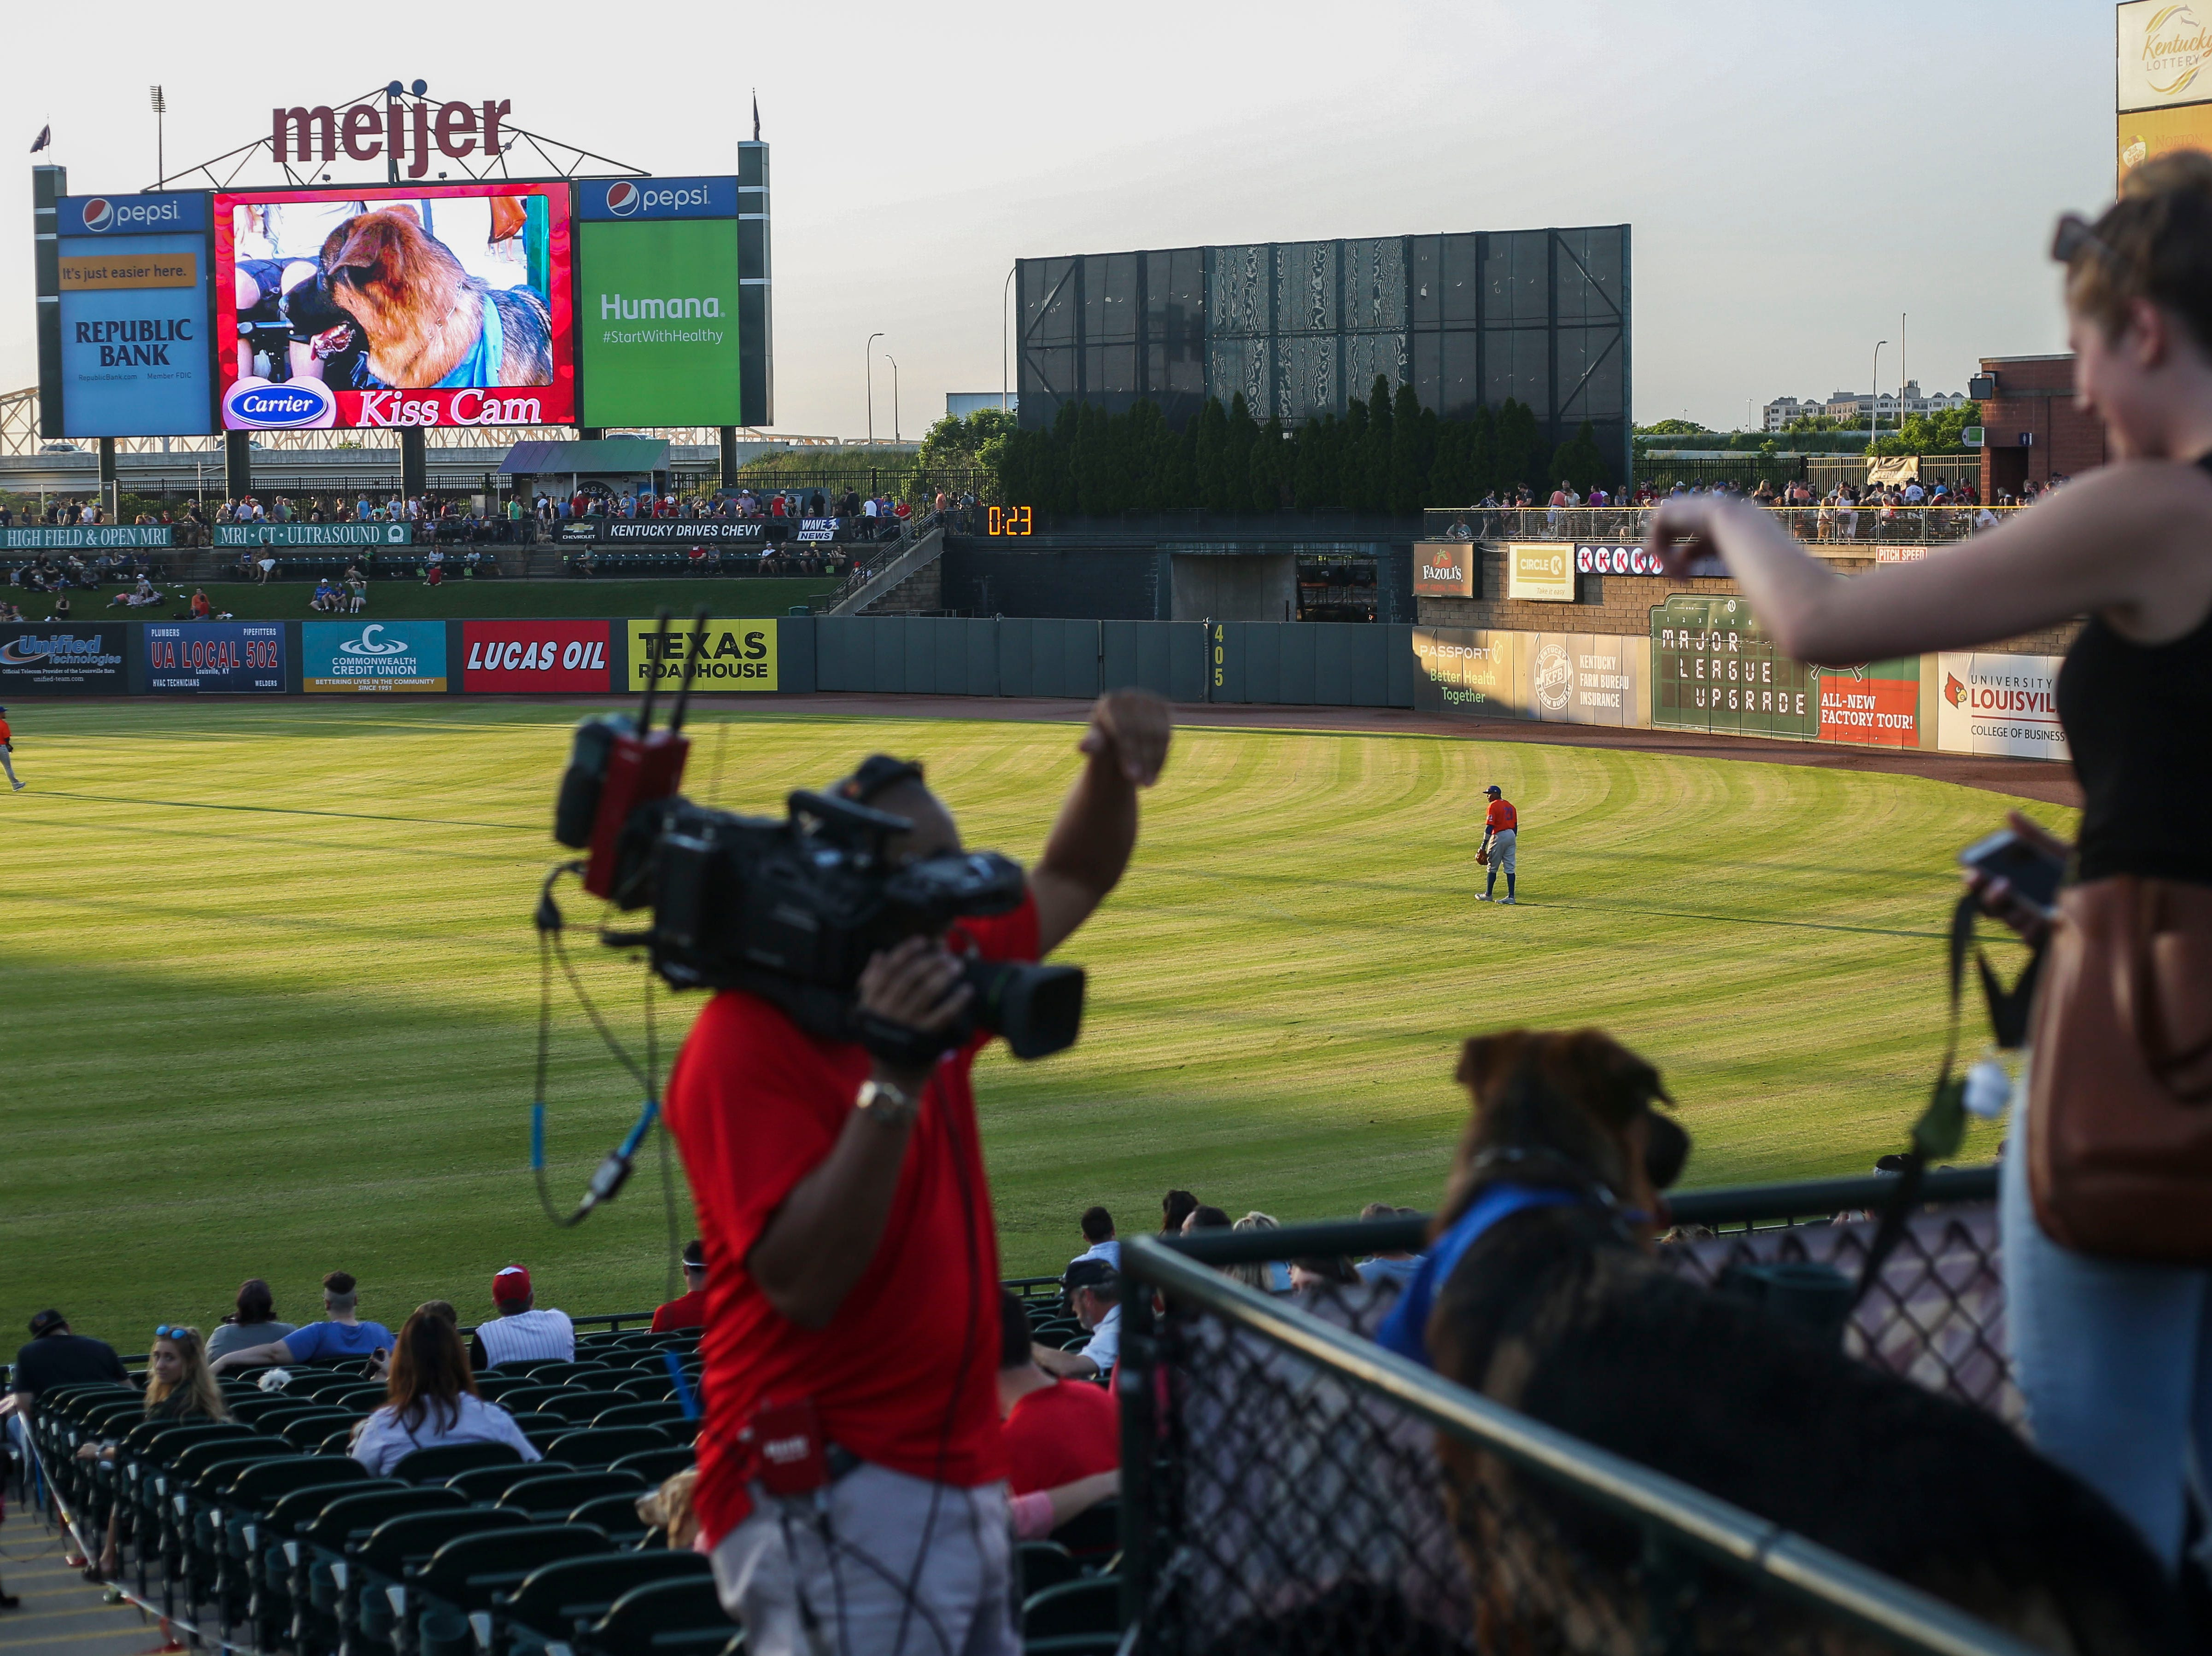 A cameraman attempts to get a dog to look into the Kiss Cam during the Louisville Bats v. Syracuse Mets game during Dog Day Nights at Louisville Slugger Field in downtown Louisville, Ky. on Tuesday, May 7, 2019.